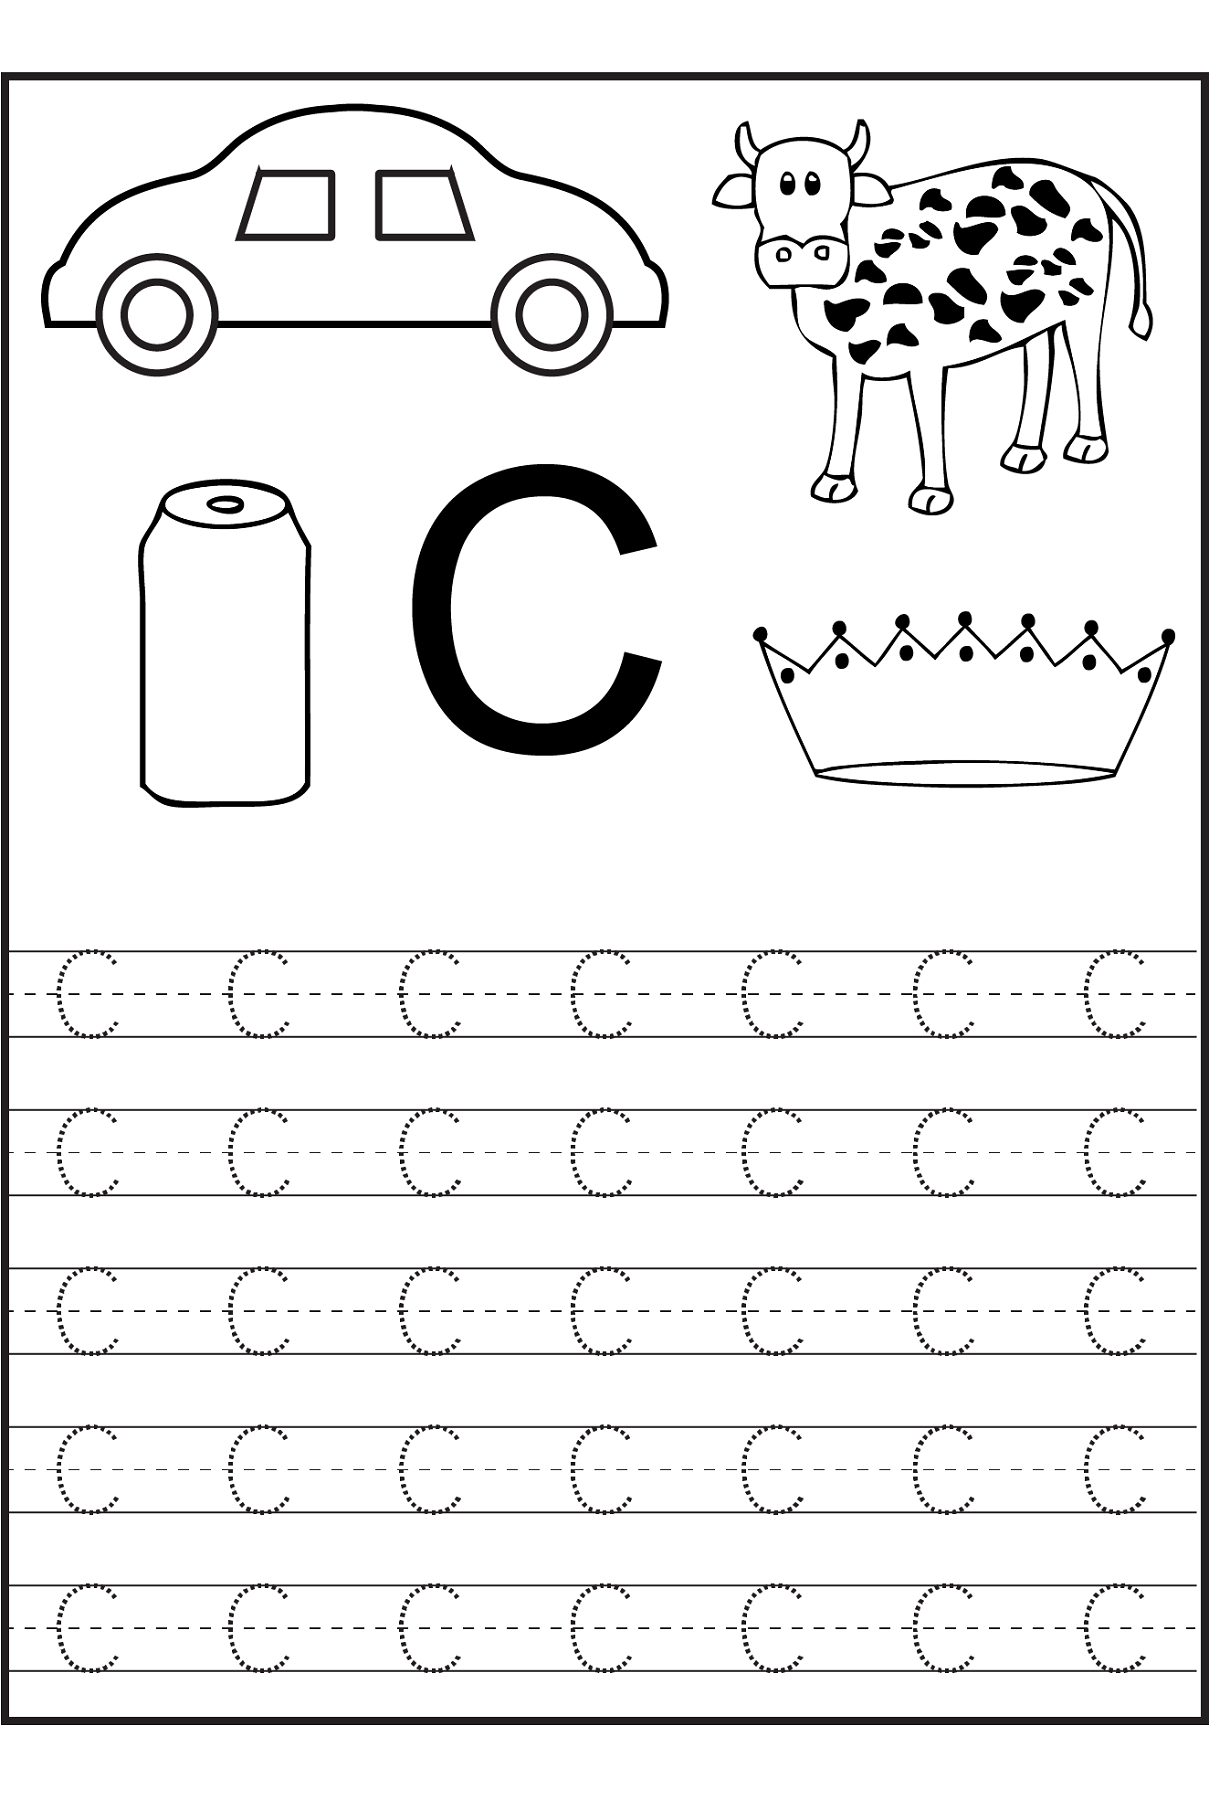 Free Printable Preschool Worksheets Letter C